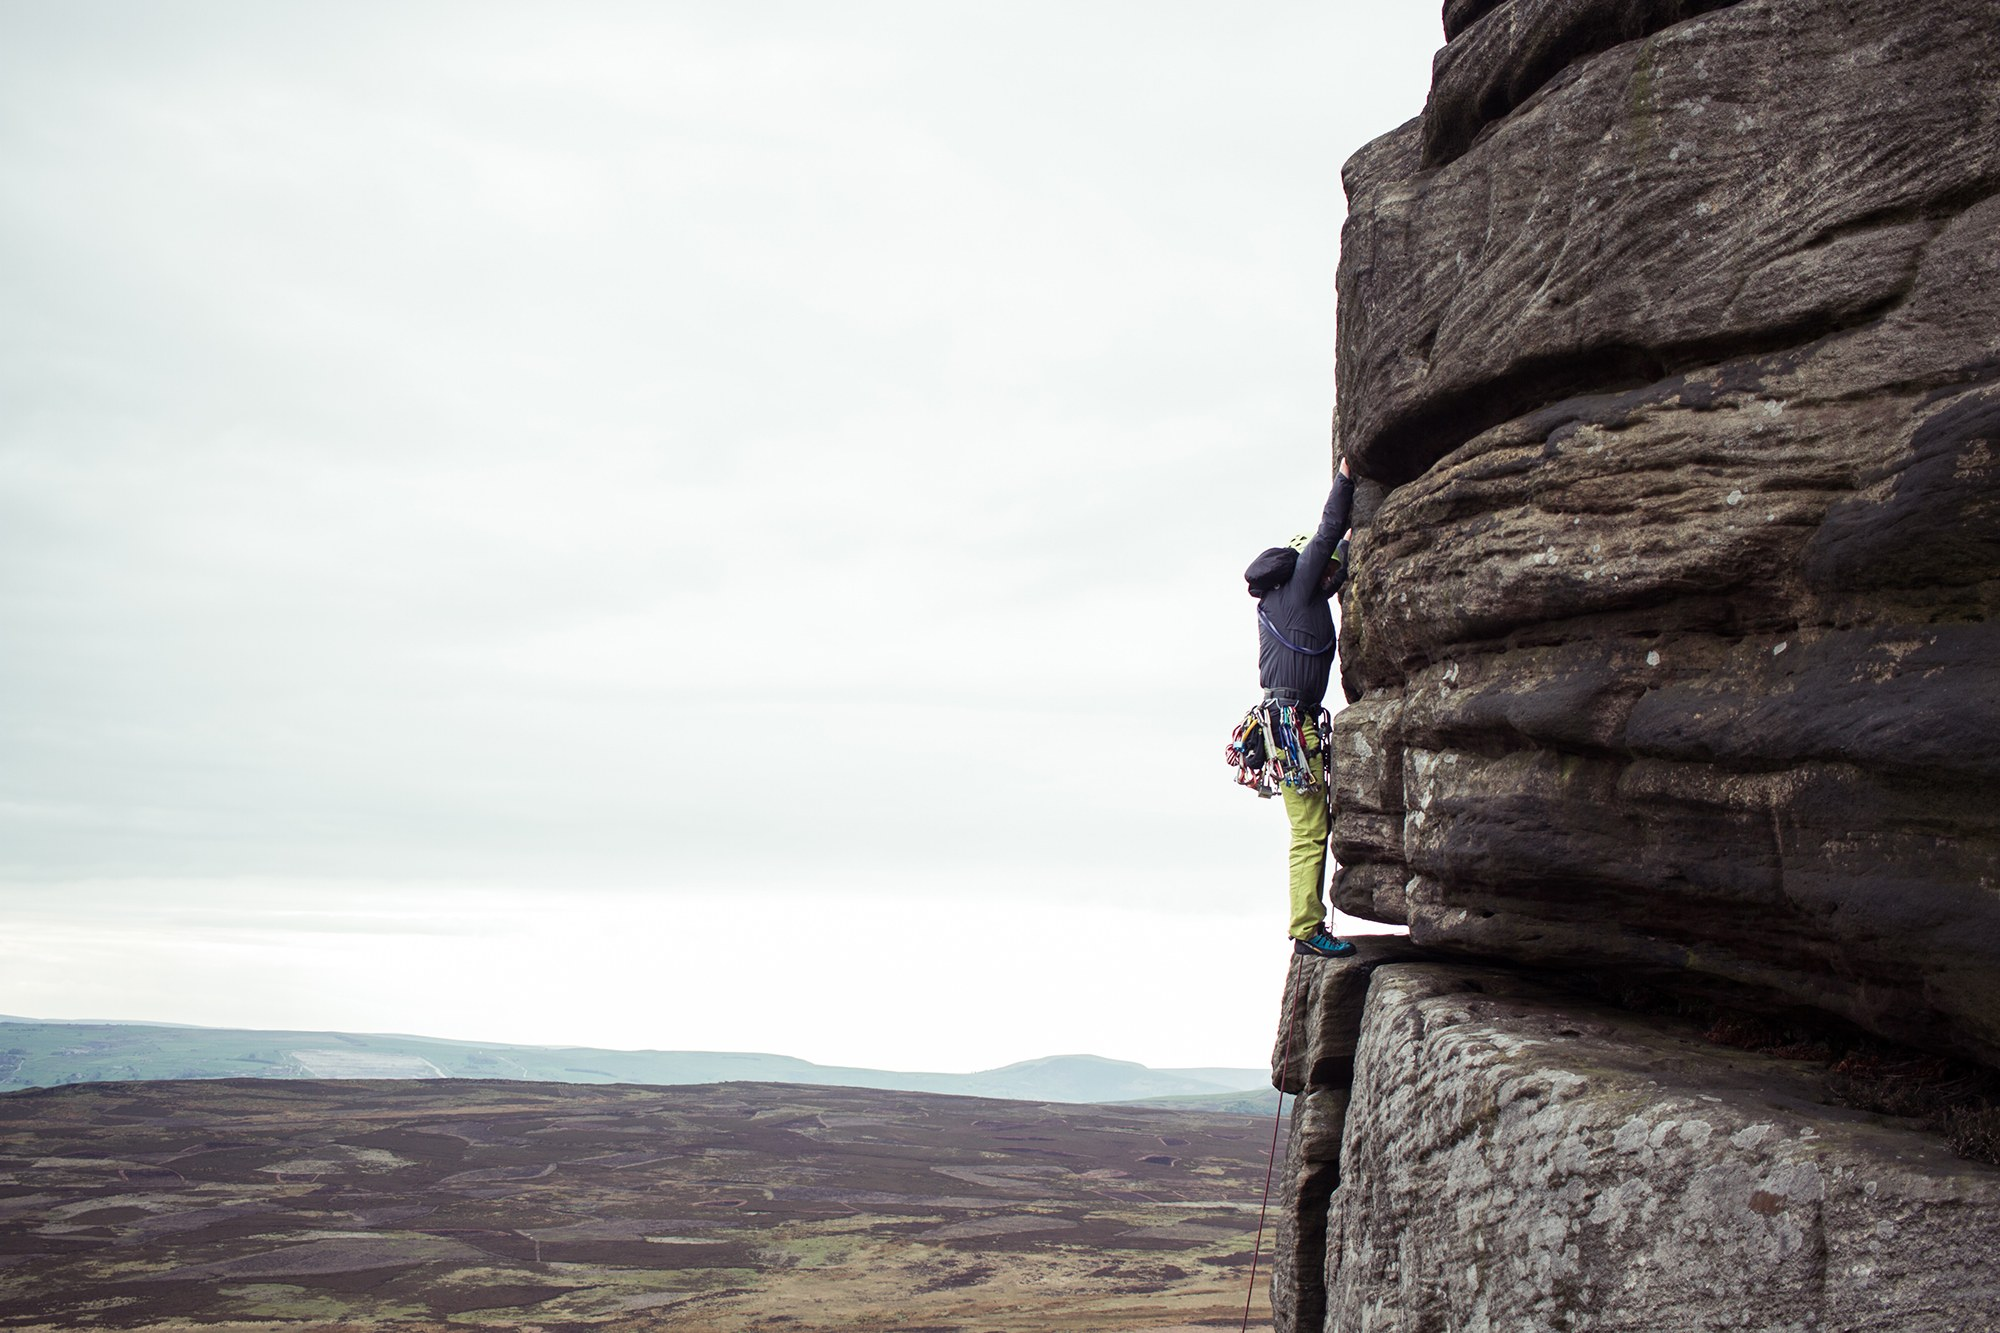 Photograph of Emma Cooper for YORKSHIRE GRIT